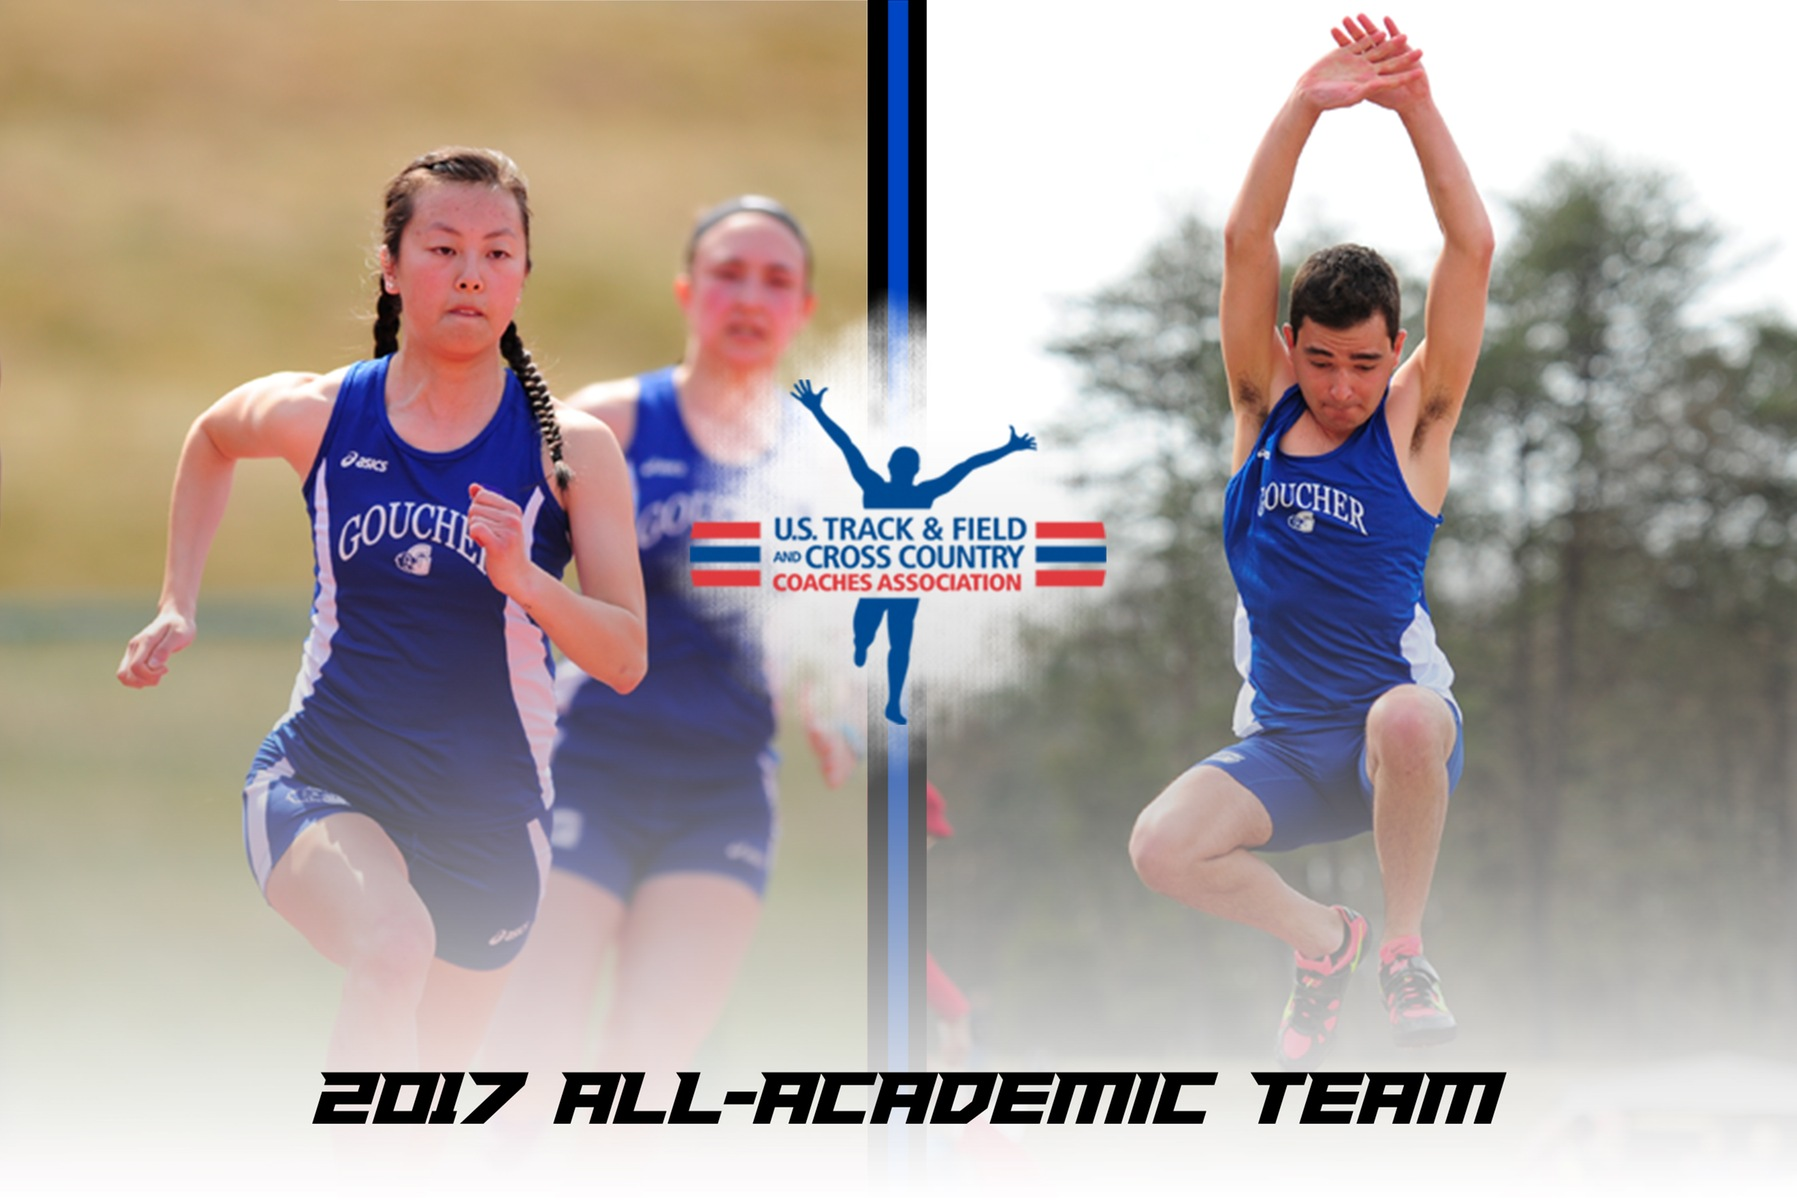 Track & Field Teams Sweep 2017 USTFCCCA All-Academic Team Awards